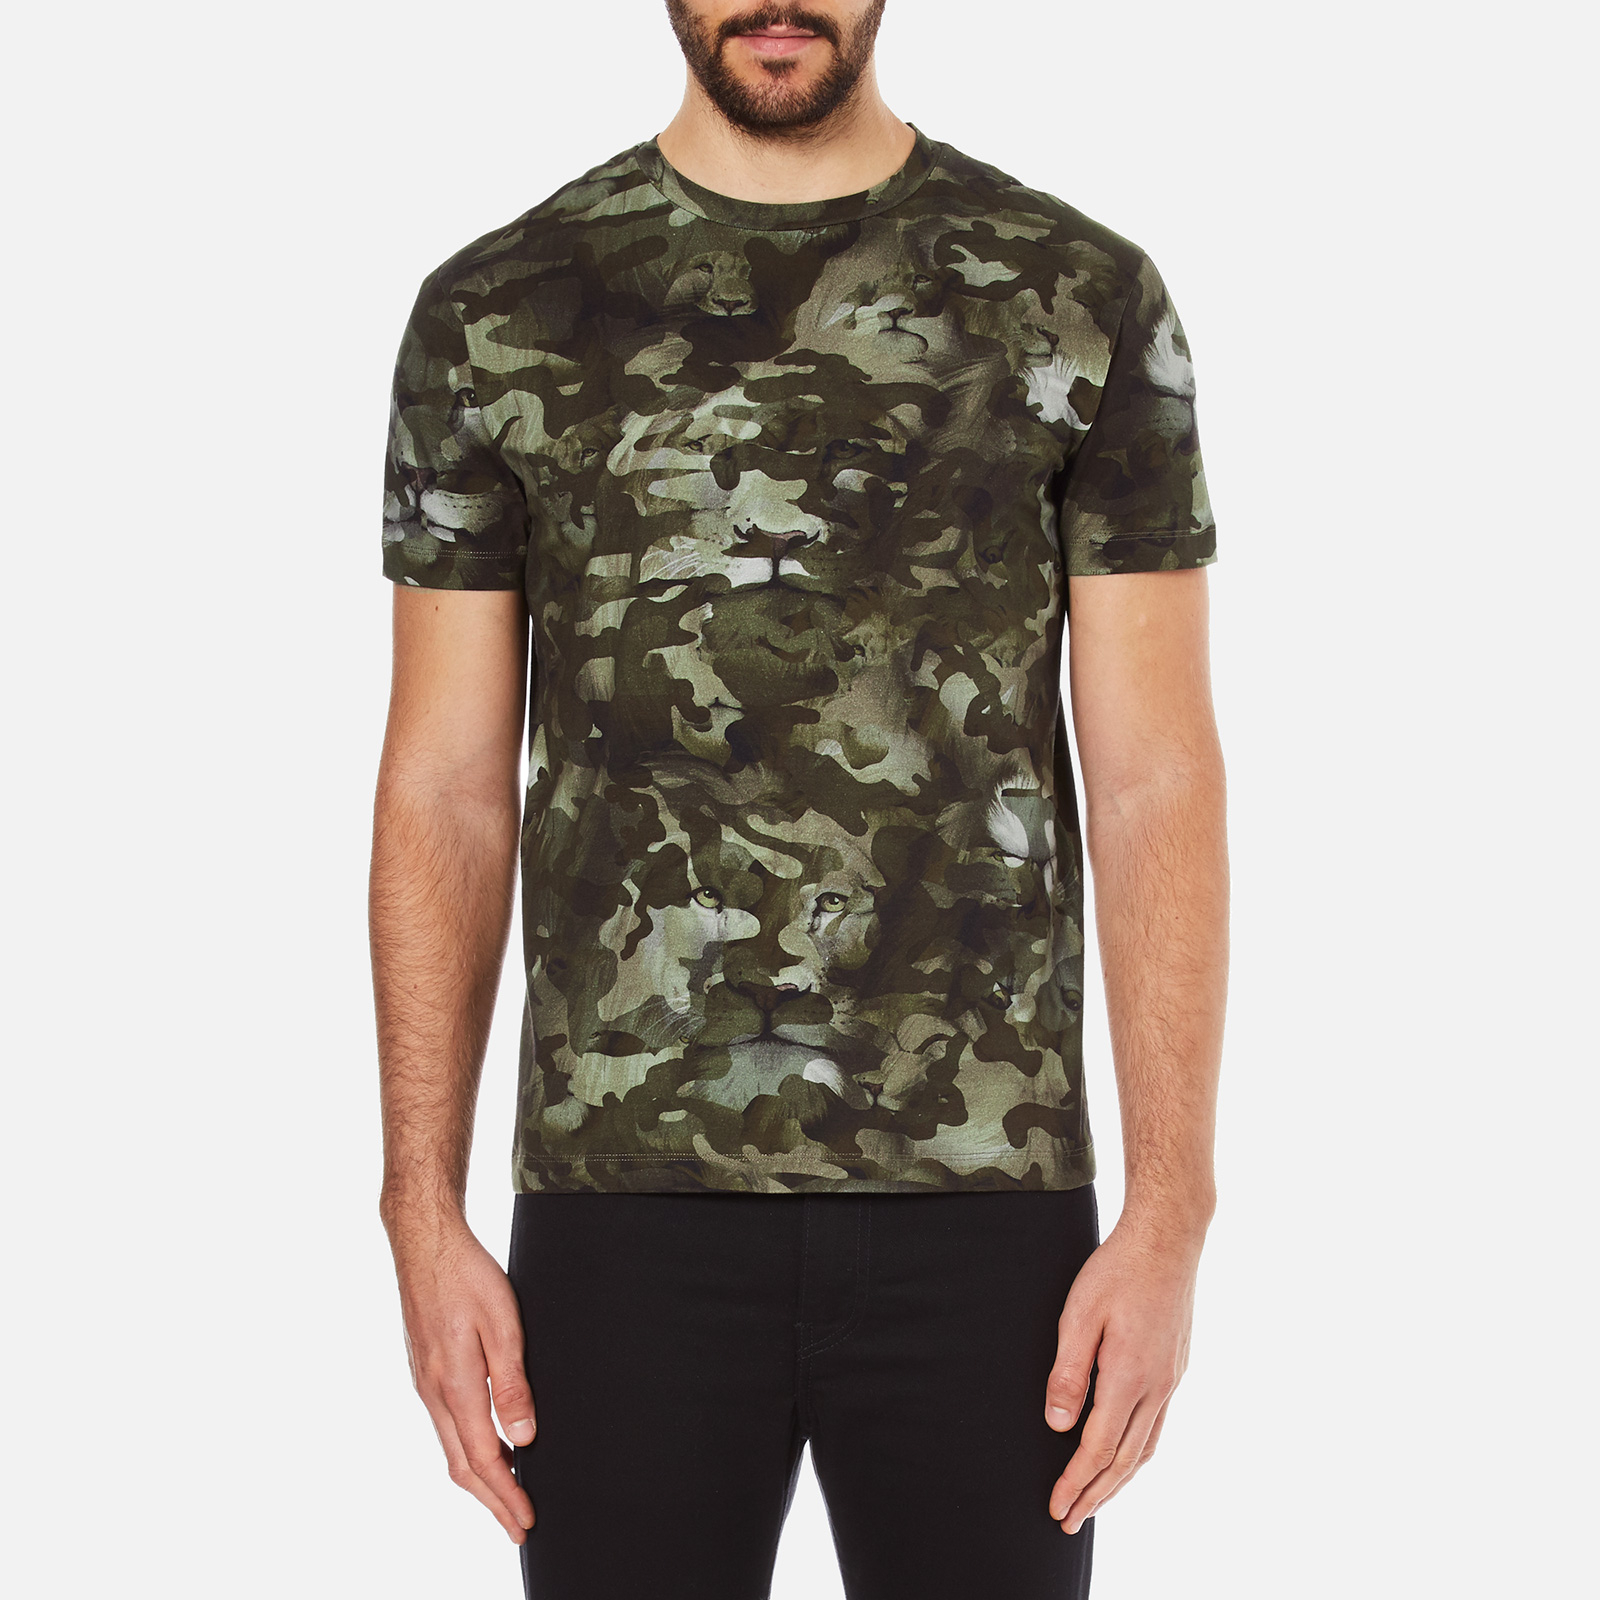 b85c5477 Versus Versace Men's Camo Print Crew Neck T-Shirt - Stampa - Free UK  Delivery over £50